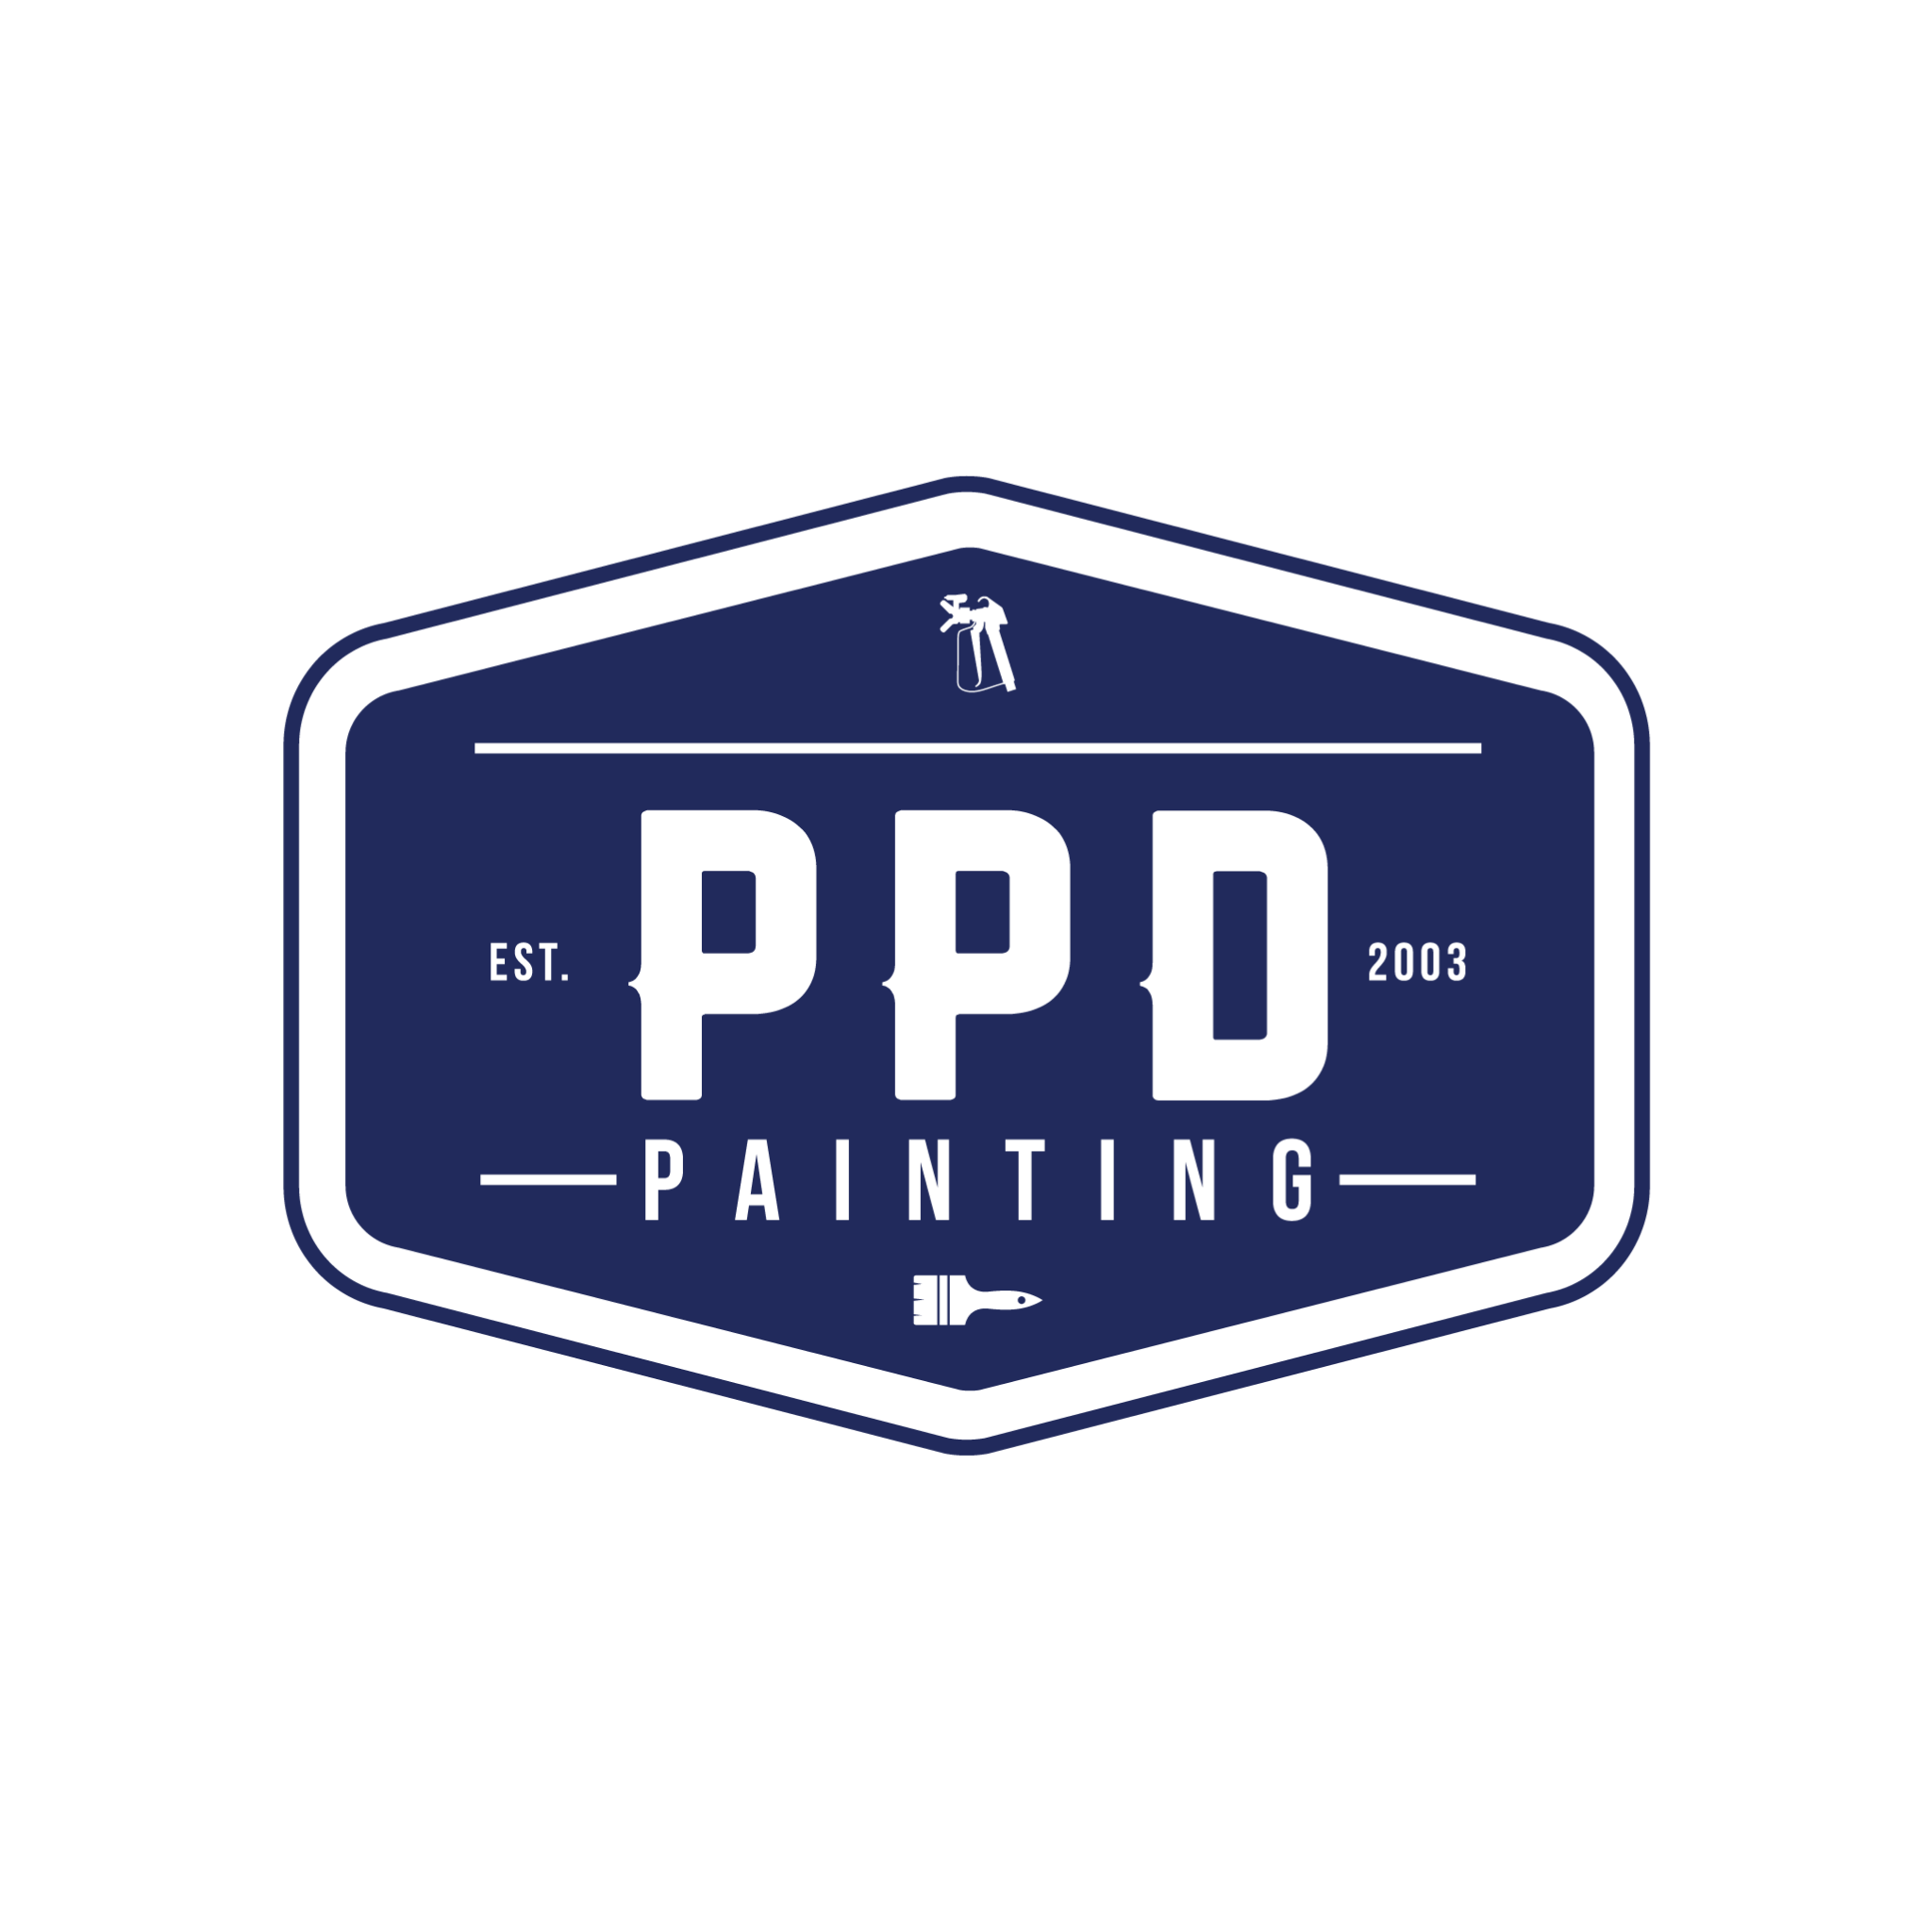 PPD Painting